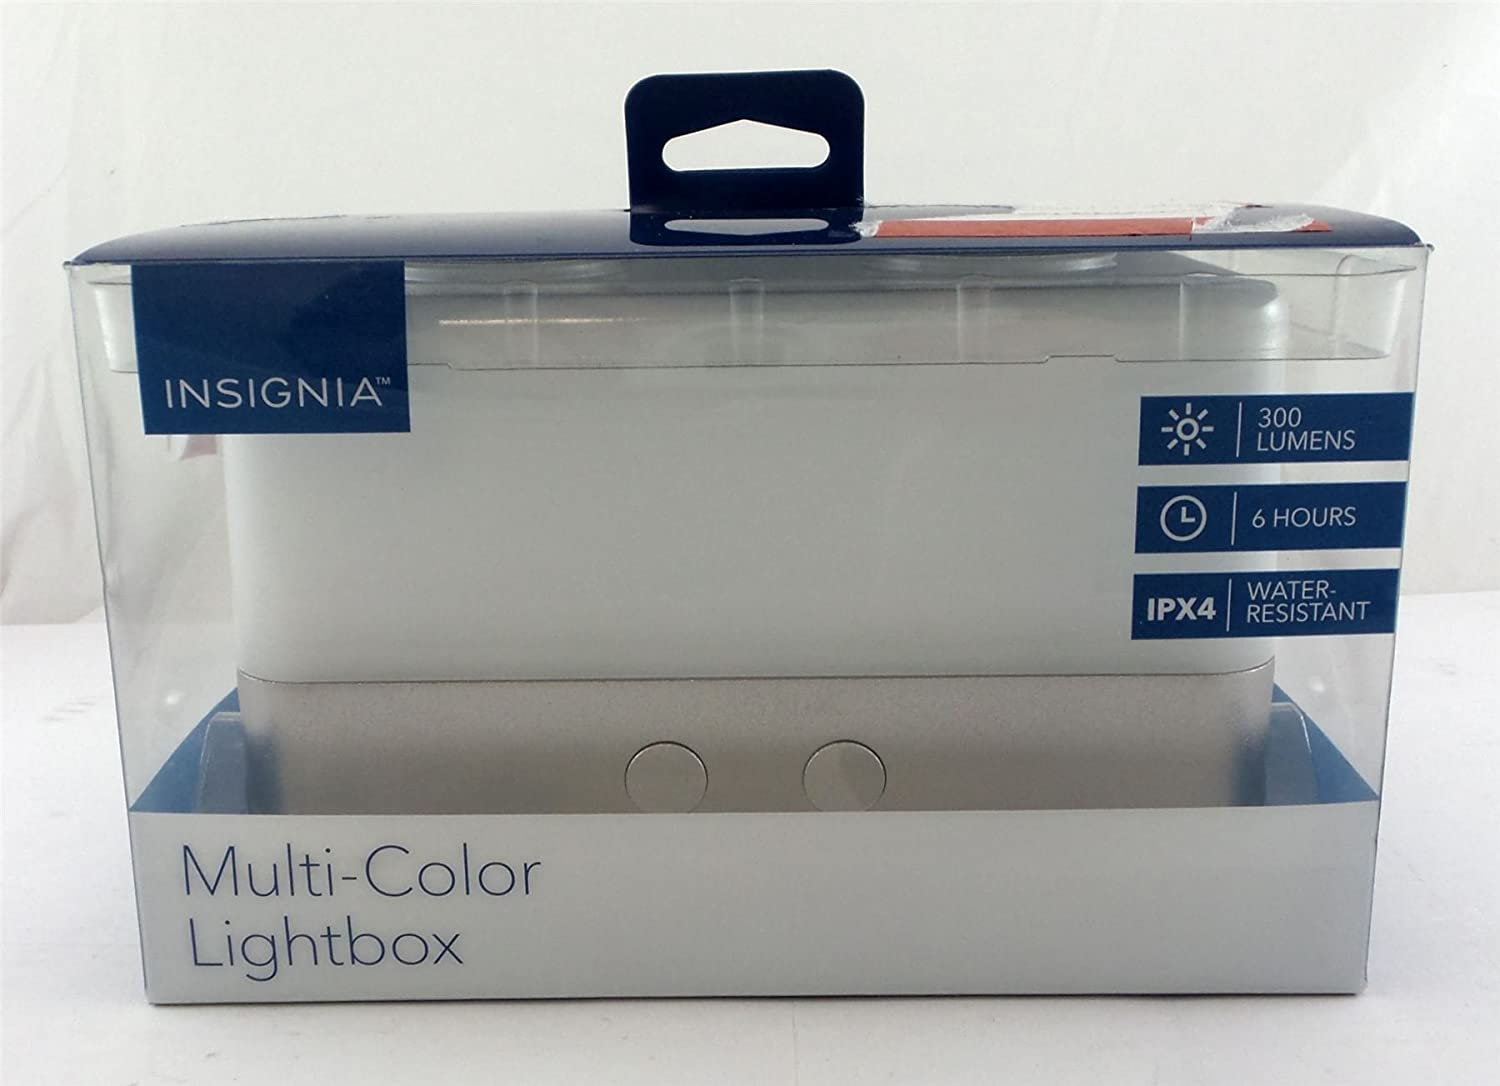 Amazon.com: Insignia Multicolor Lightbox lámpara LED ns ...